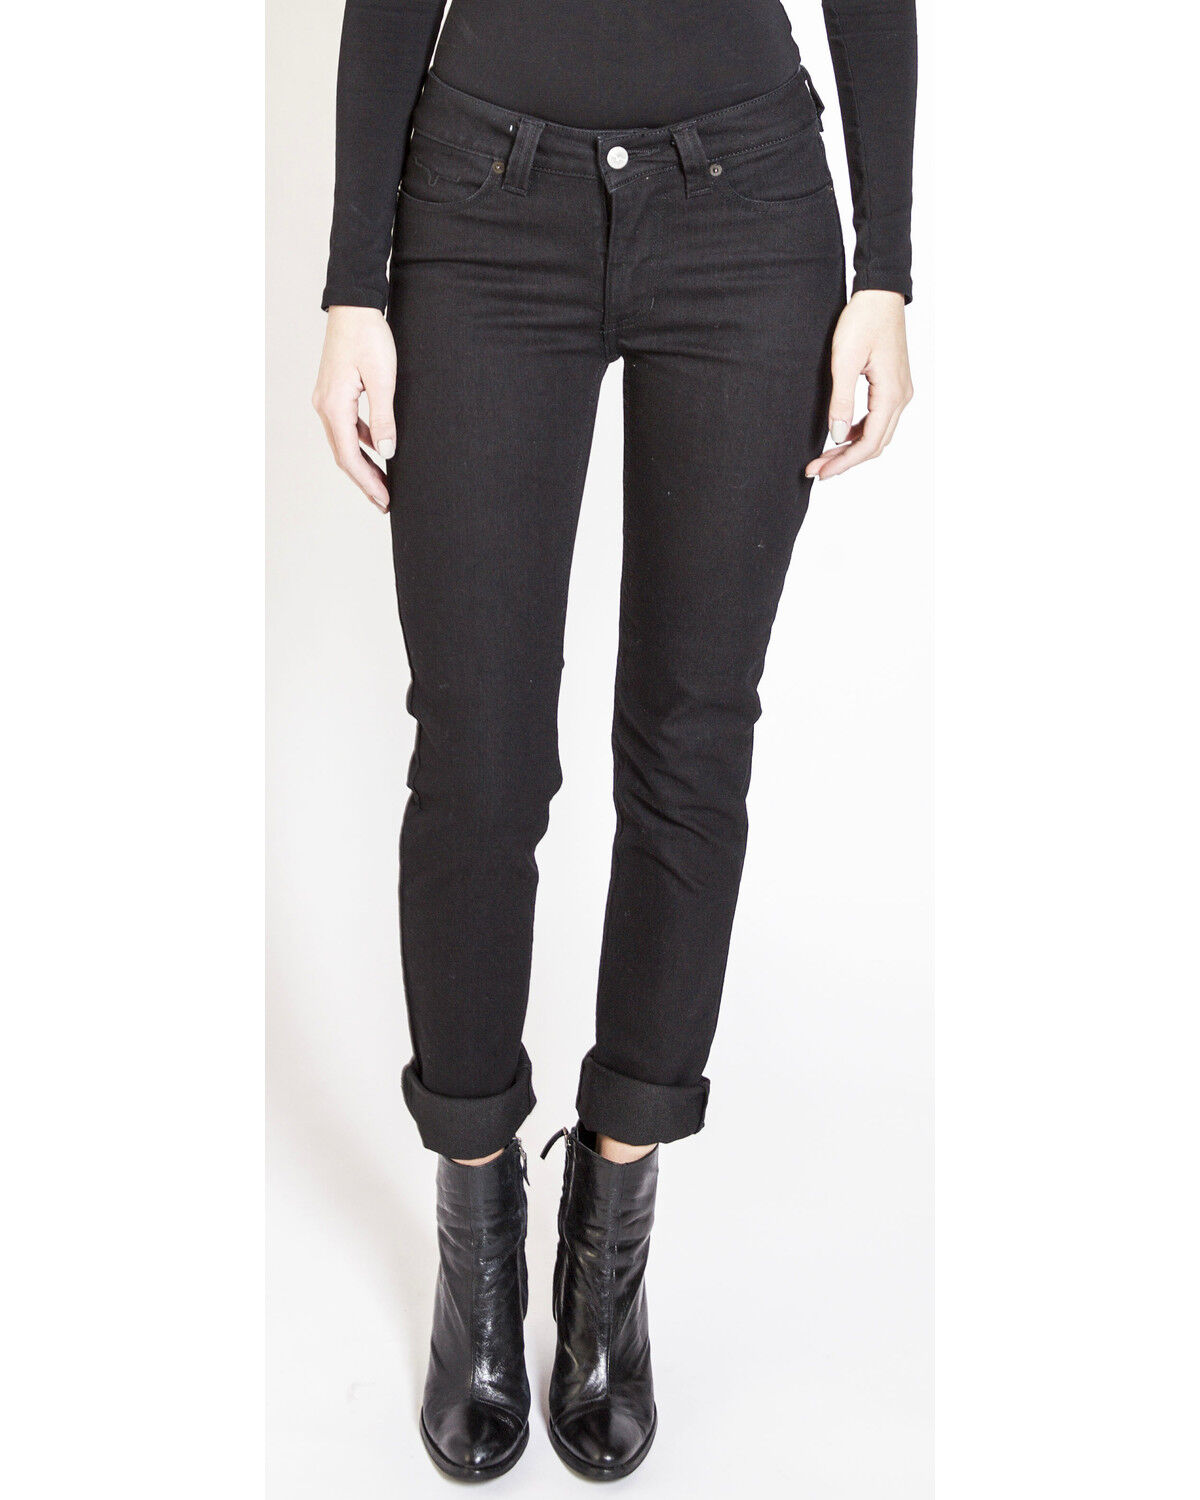 Kimes Ranch Women/'s Mid-Rise Betty Black Boot Cut Jeans